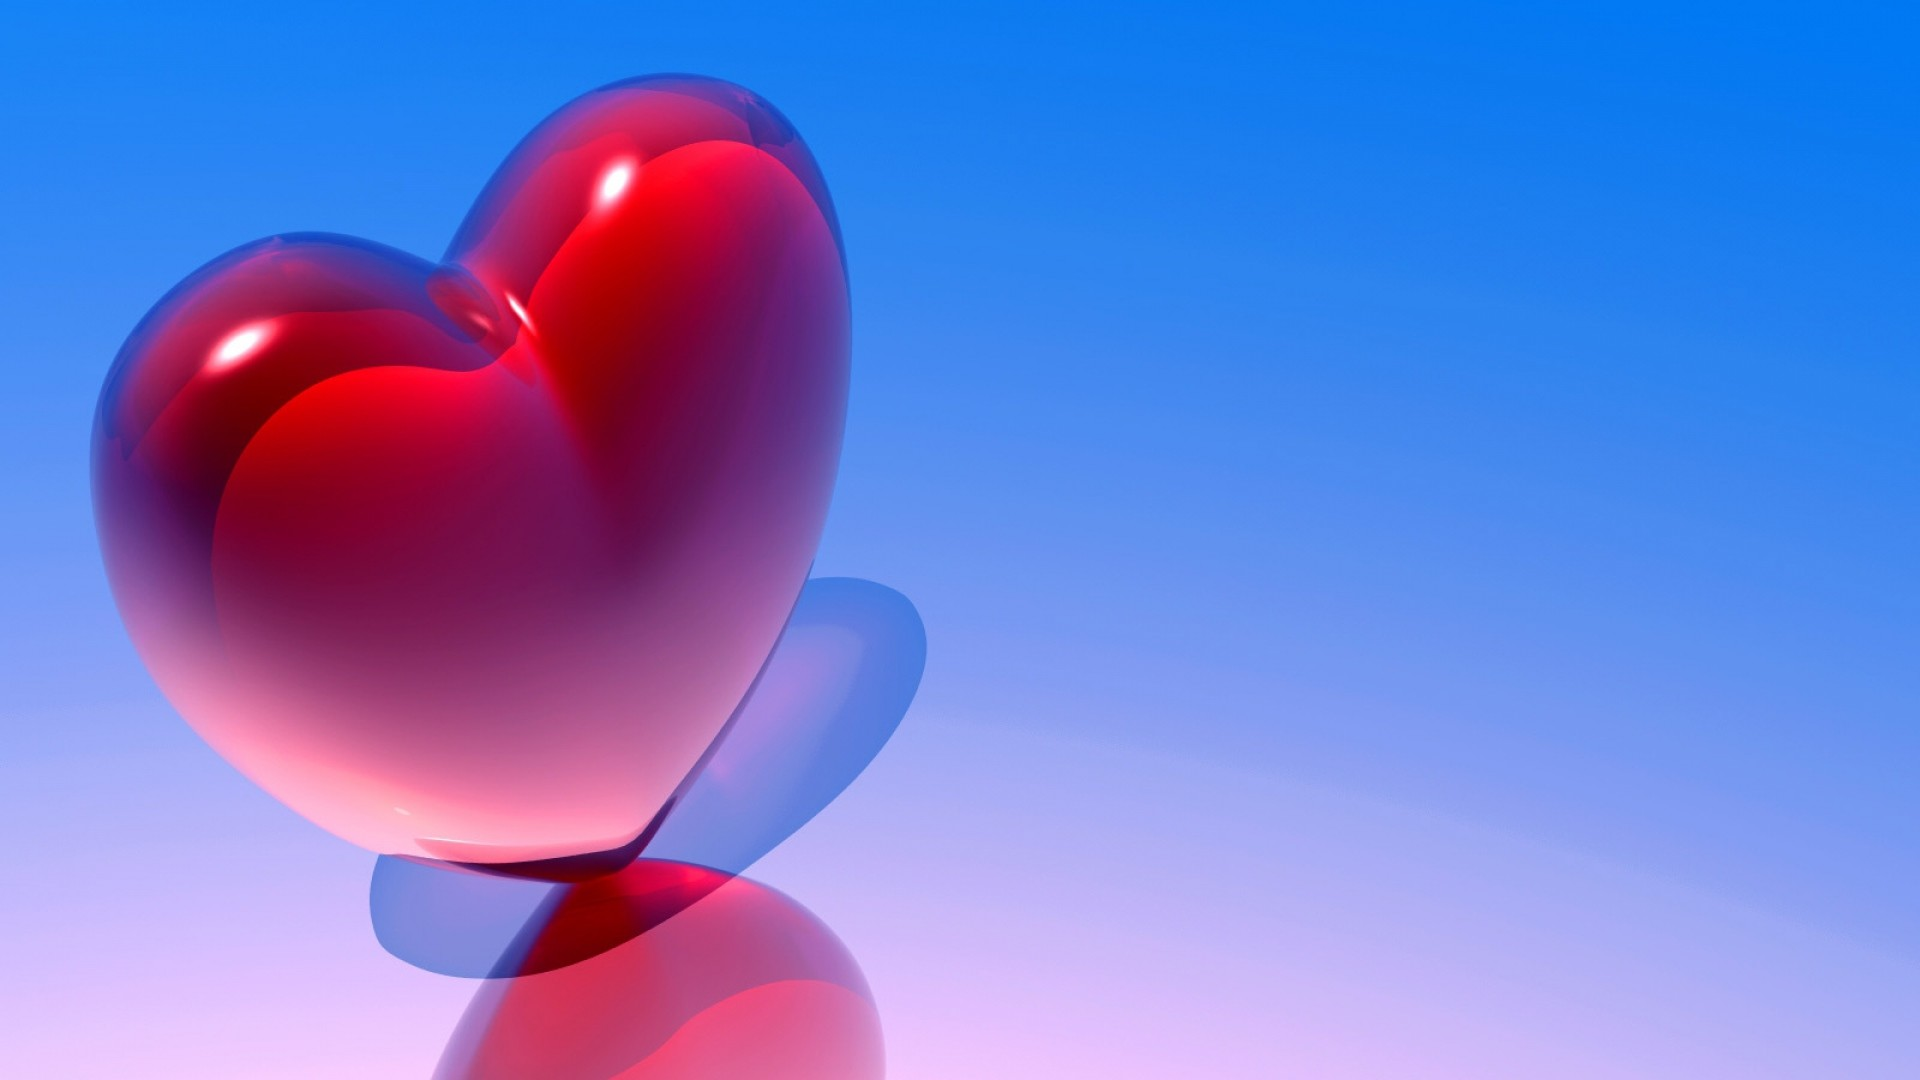 Wallpaper Heart, Love, Background